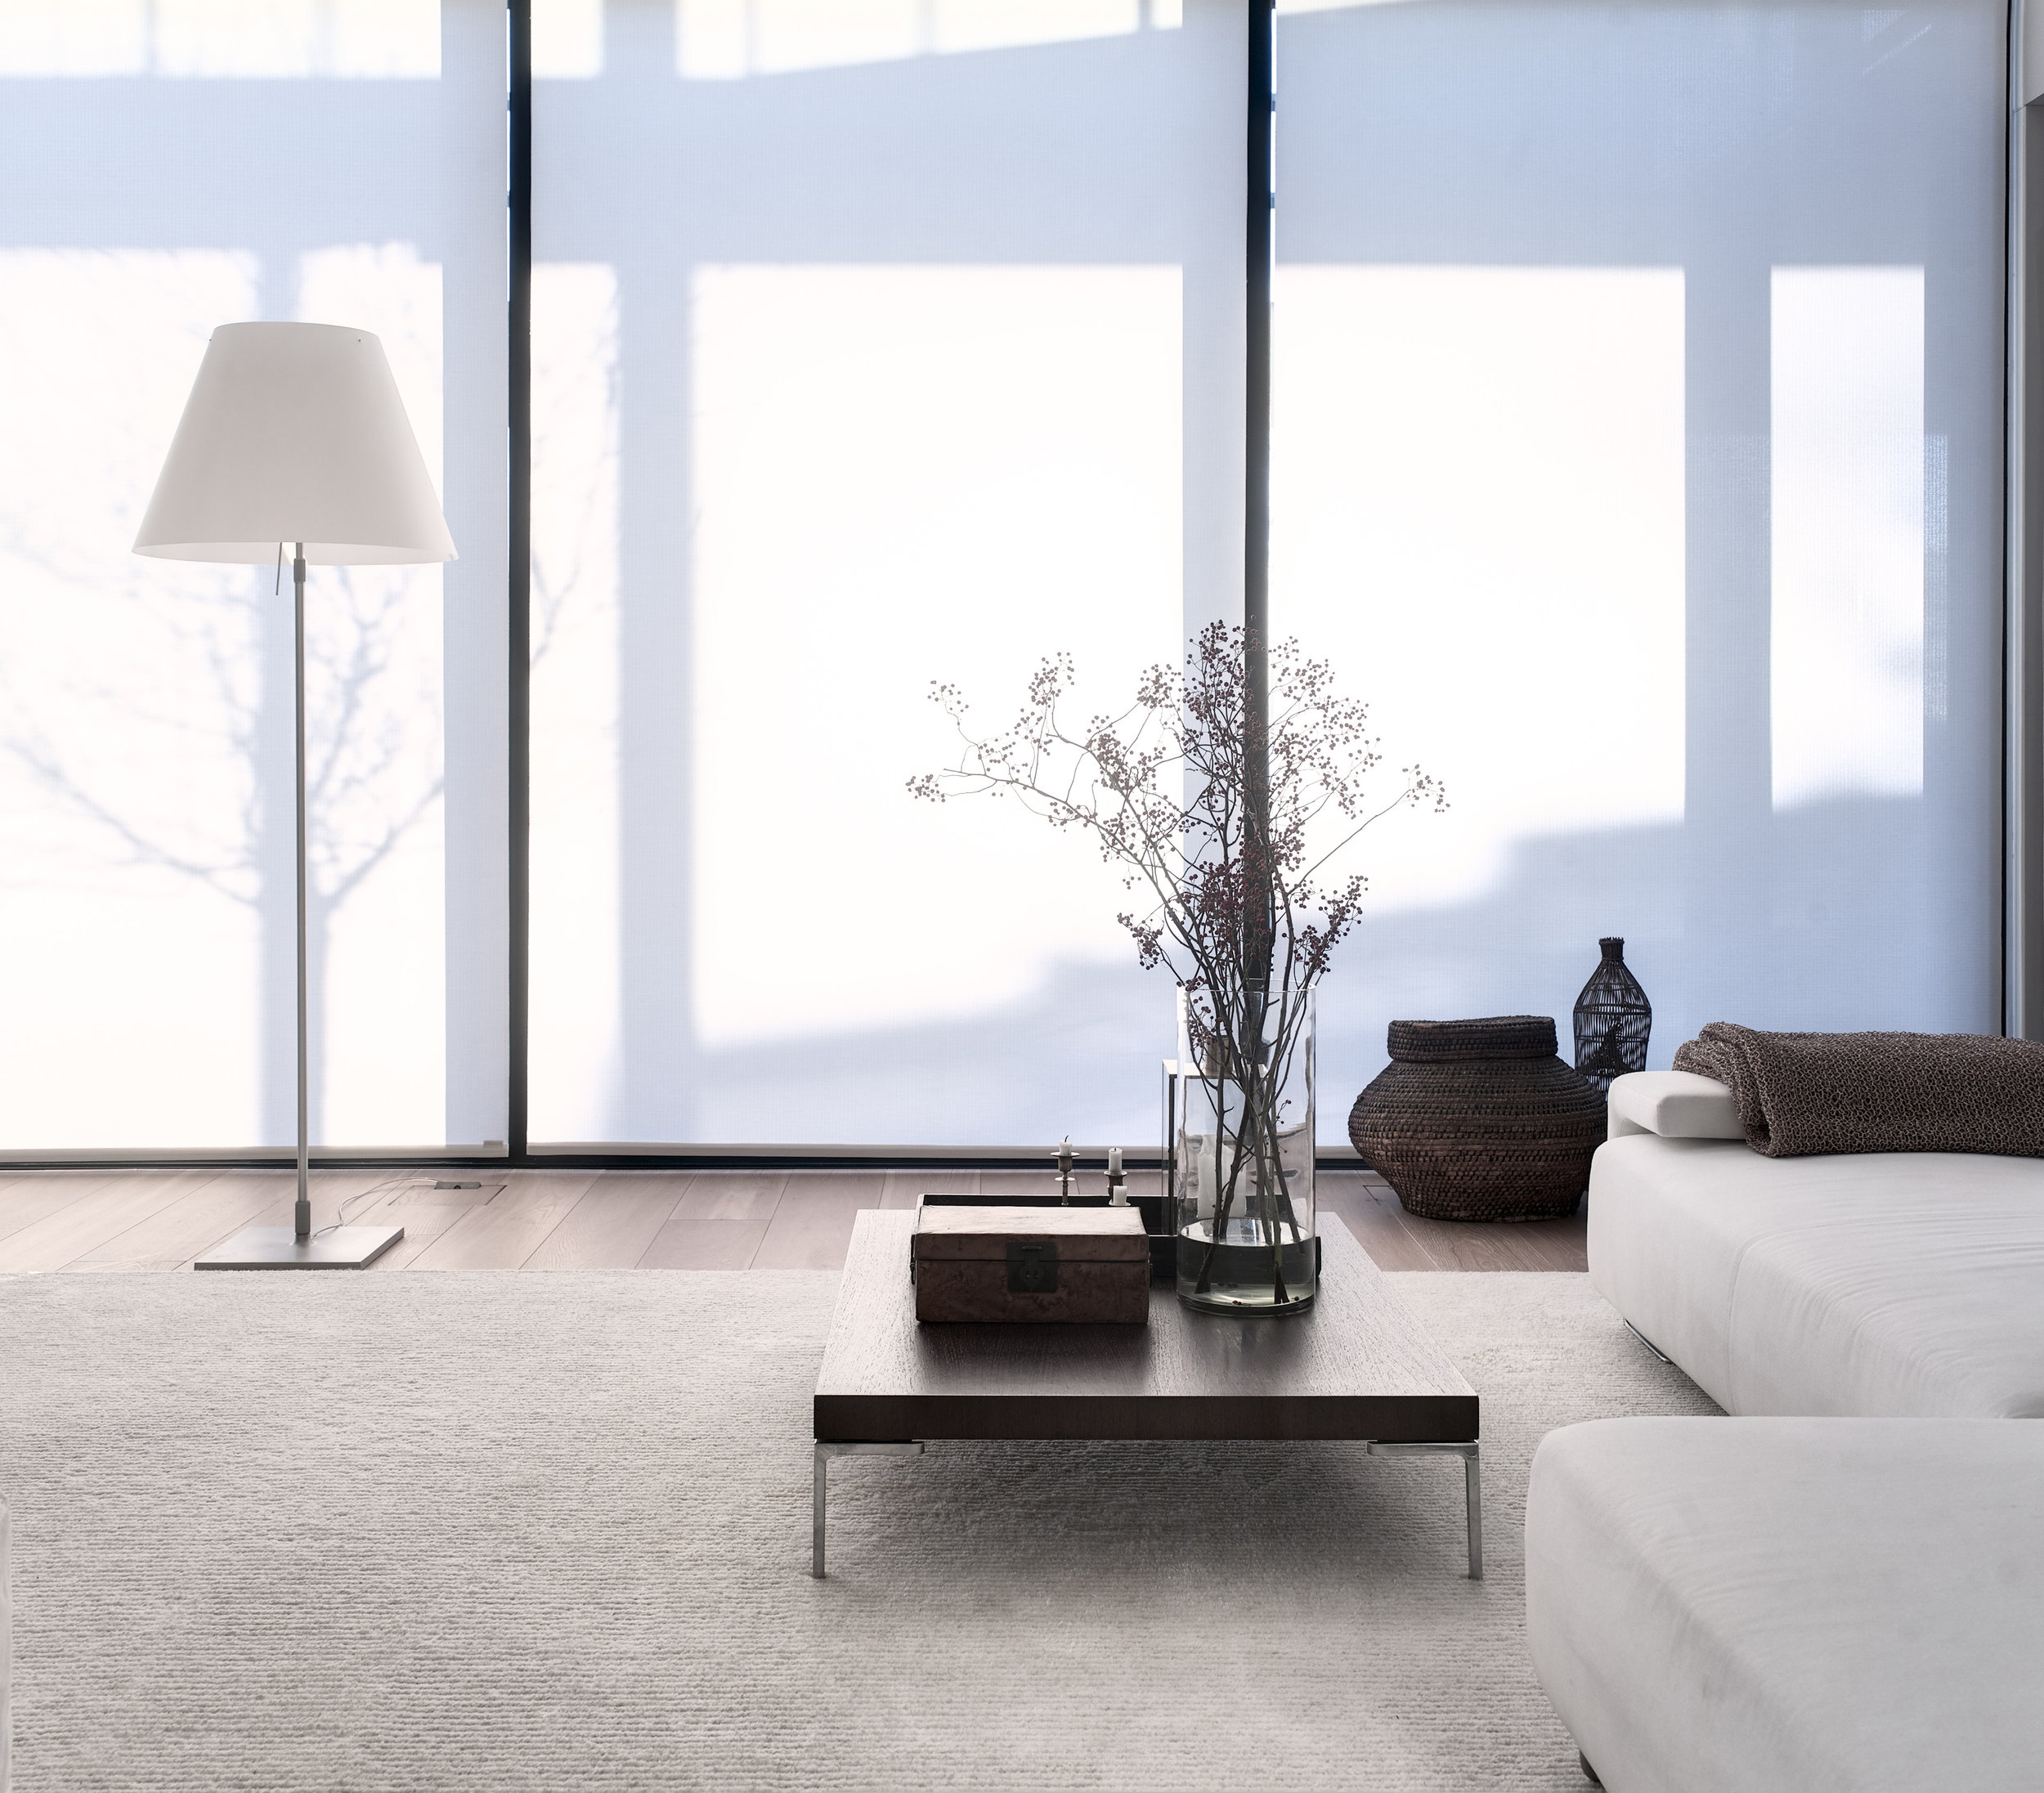 Roller blinds, 1630101  Path  white tufted carpet